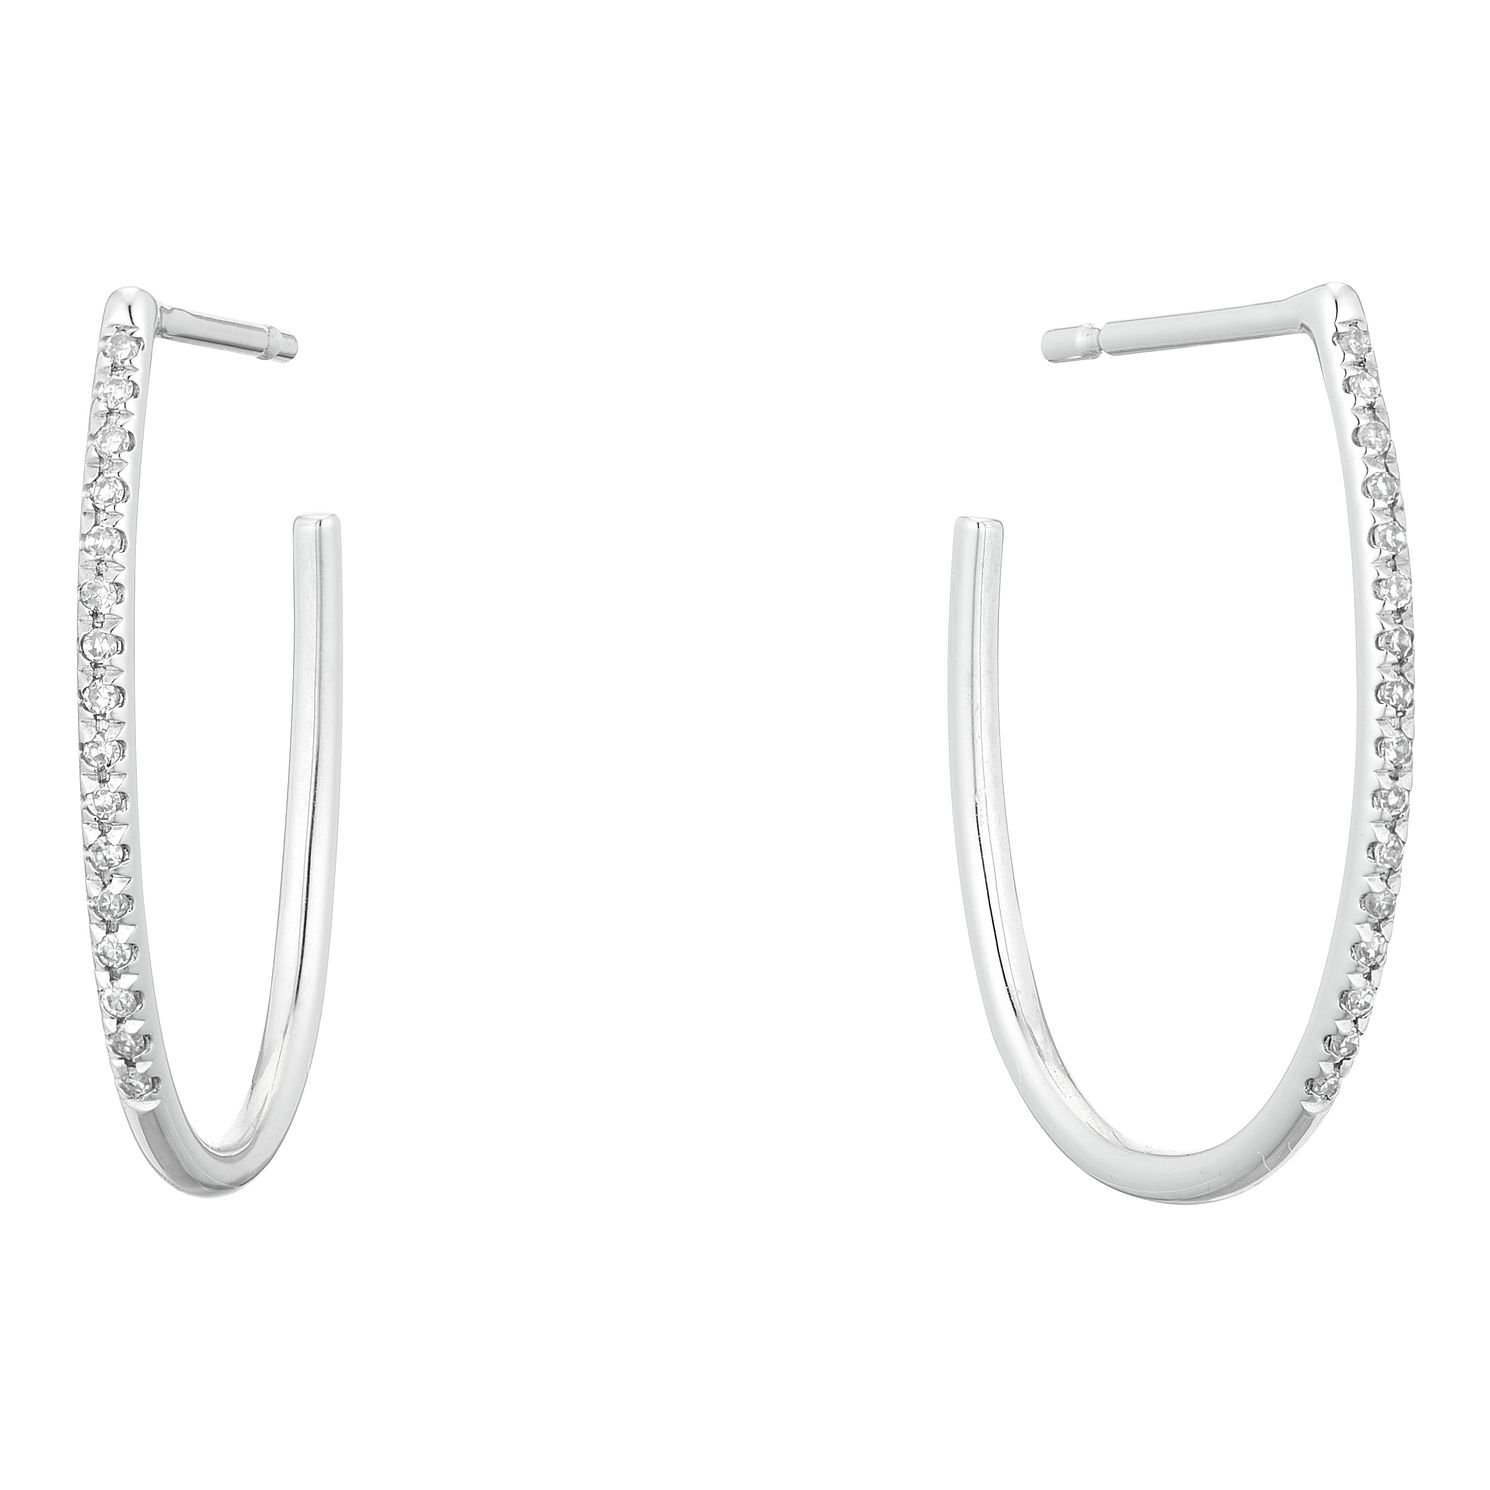 9ct Diamond Oval Hoop Earrings - Product number 4646746